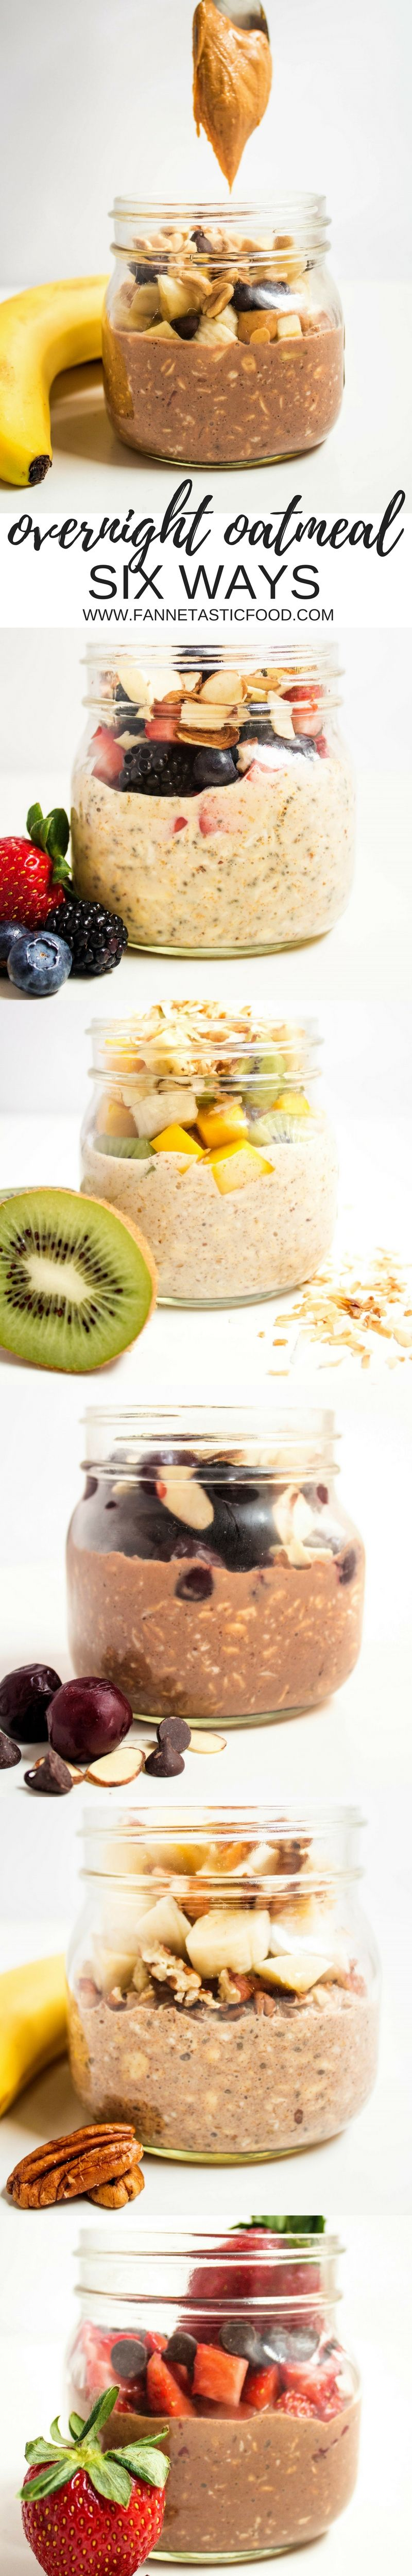 Overnight Oatmeal Six Ways - get the perfect basic overnight oatmeal recipe & six awesome flavor variations! Perfect for a quick, easy, healthy make ahead breakfast.